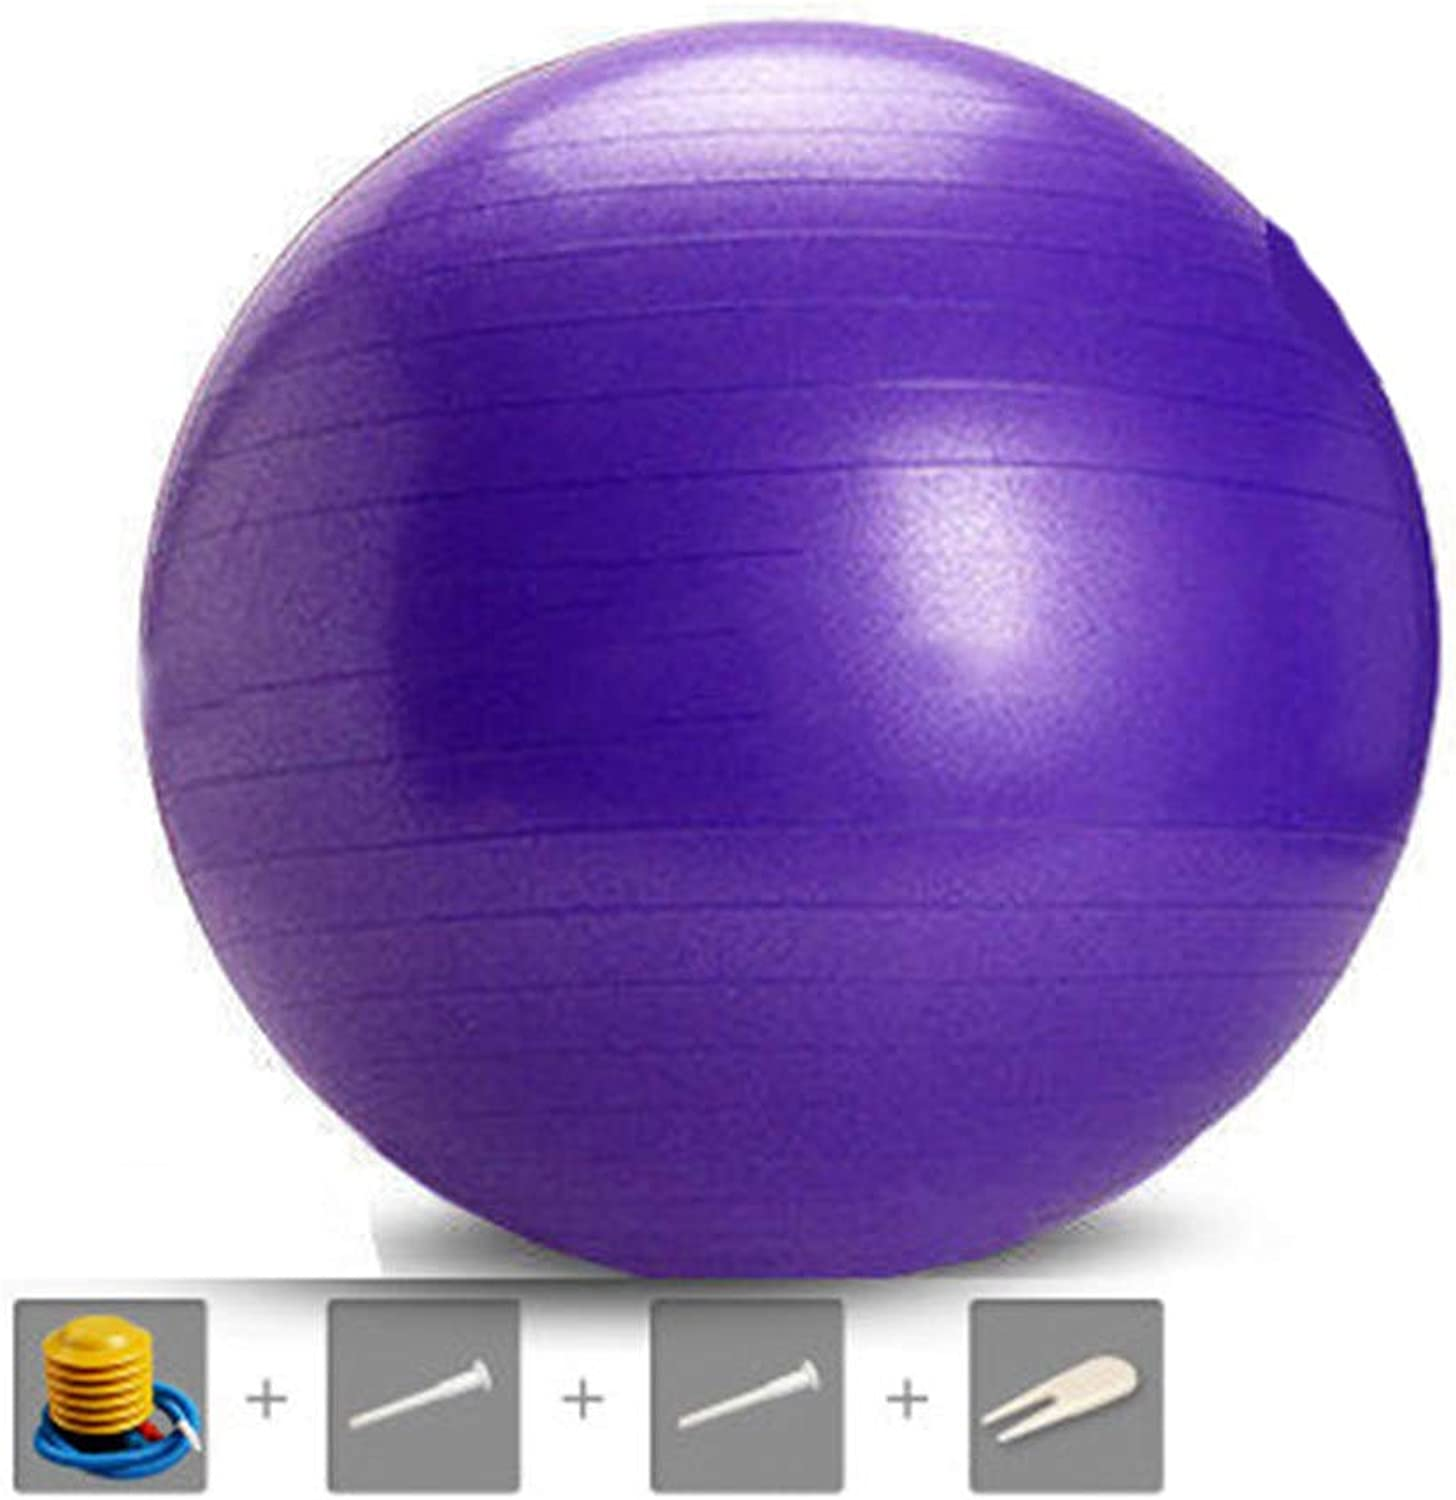 Yoga Ball Beginner Indoor Professional Pregnant Women Midwifery Fitness Ball Environmentally Friendly Material Thickened Explosion-Proof Matte Slip 65 cm Purple